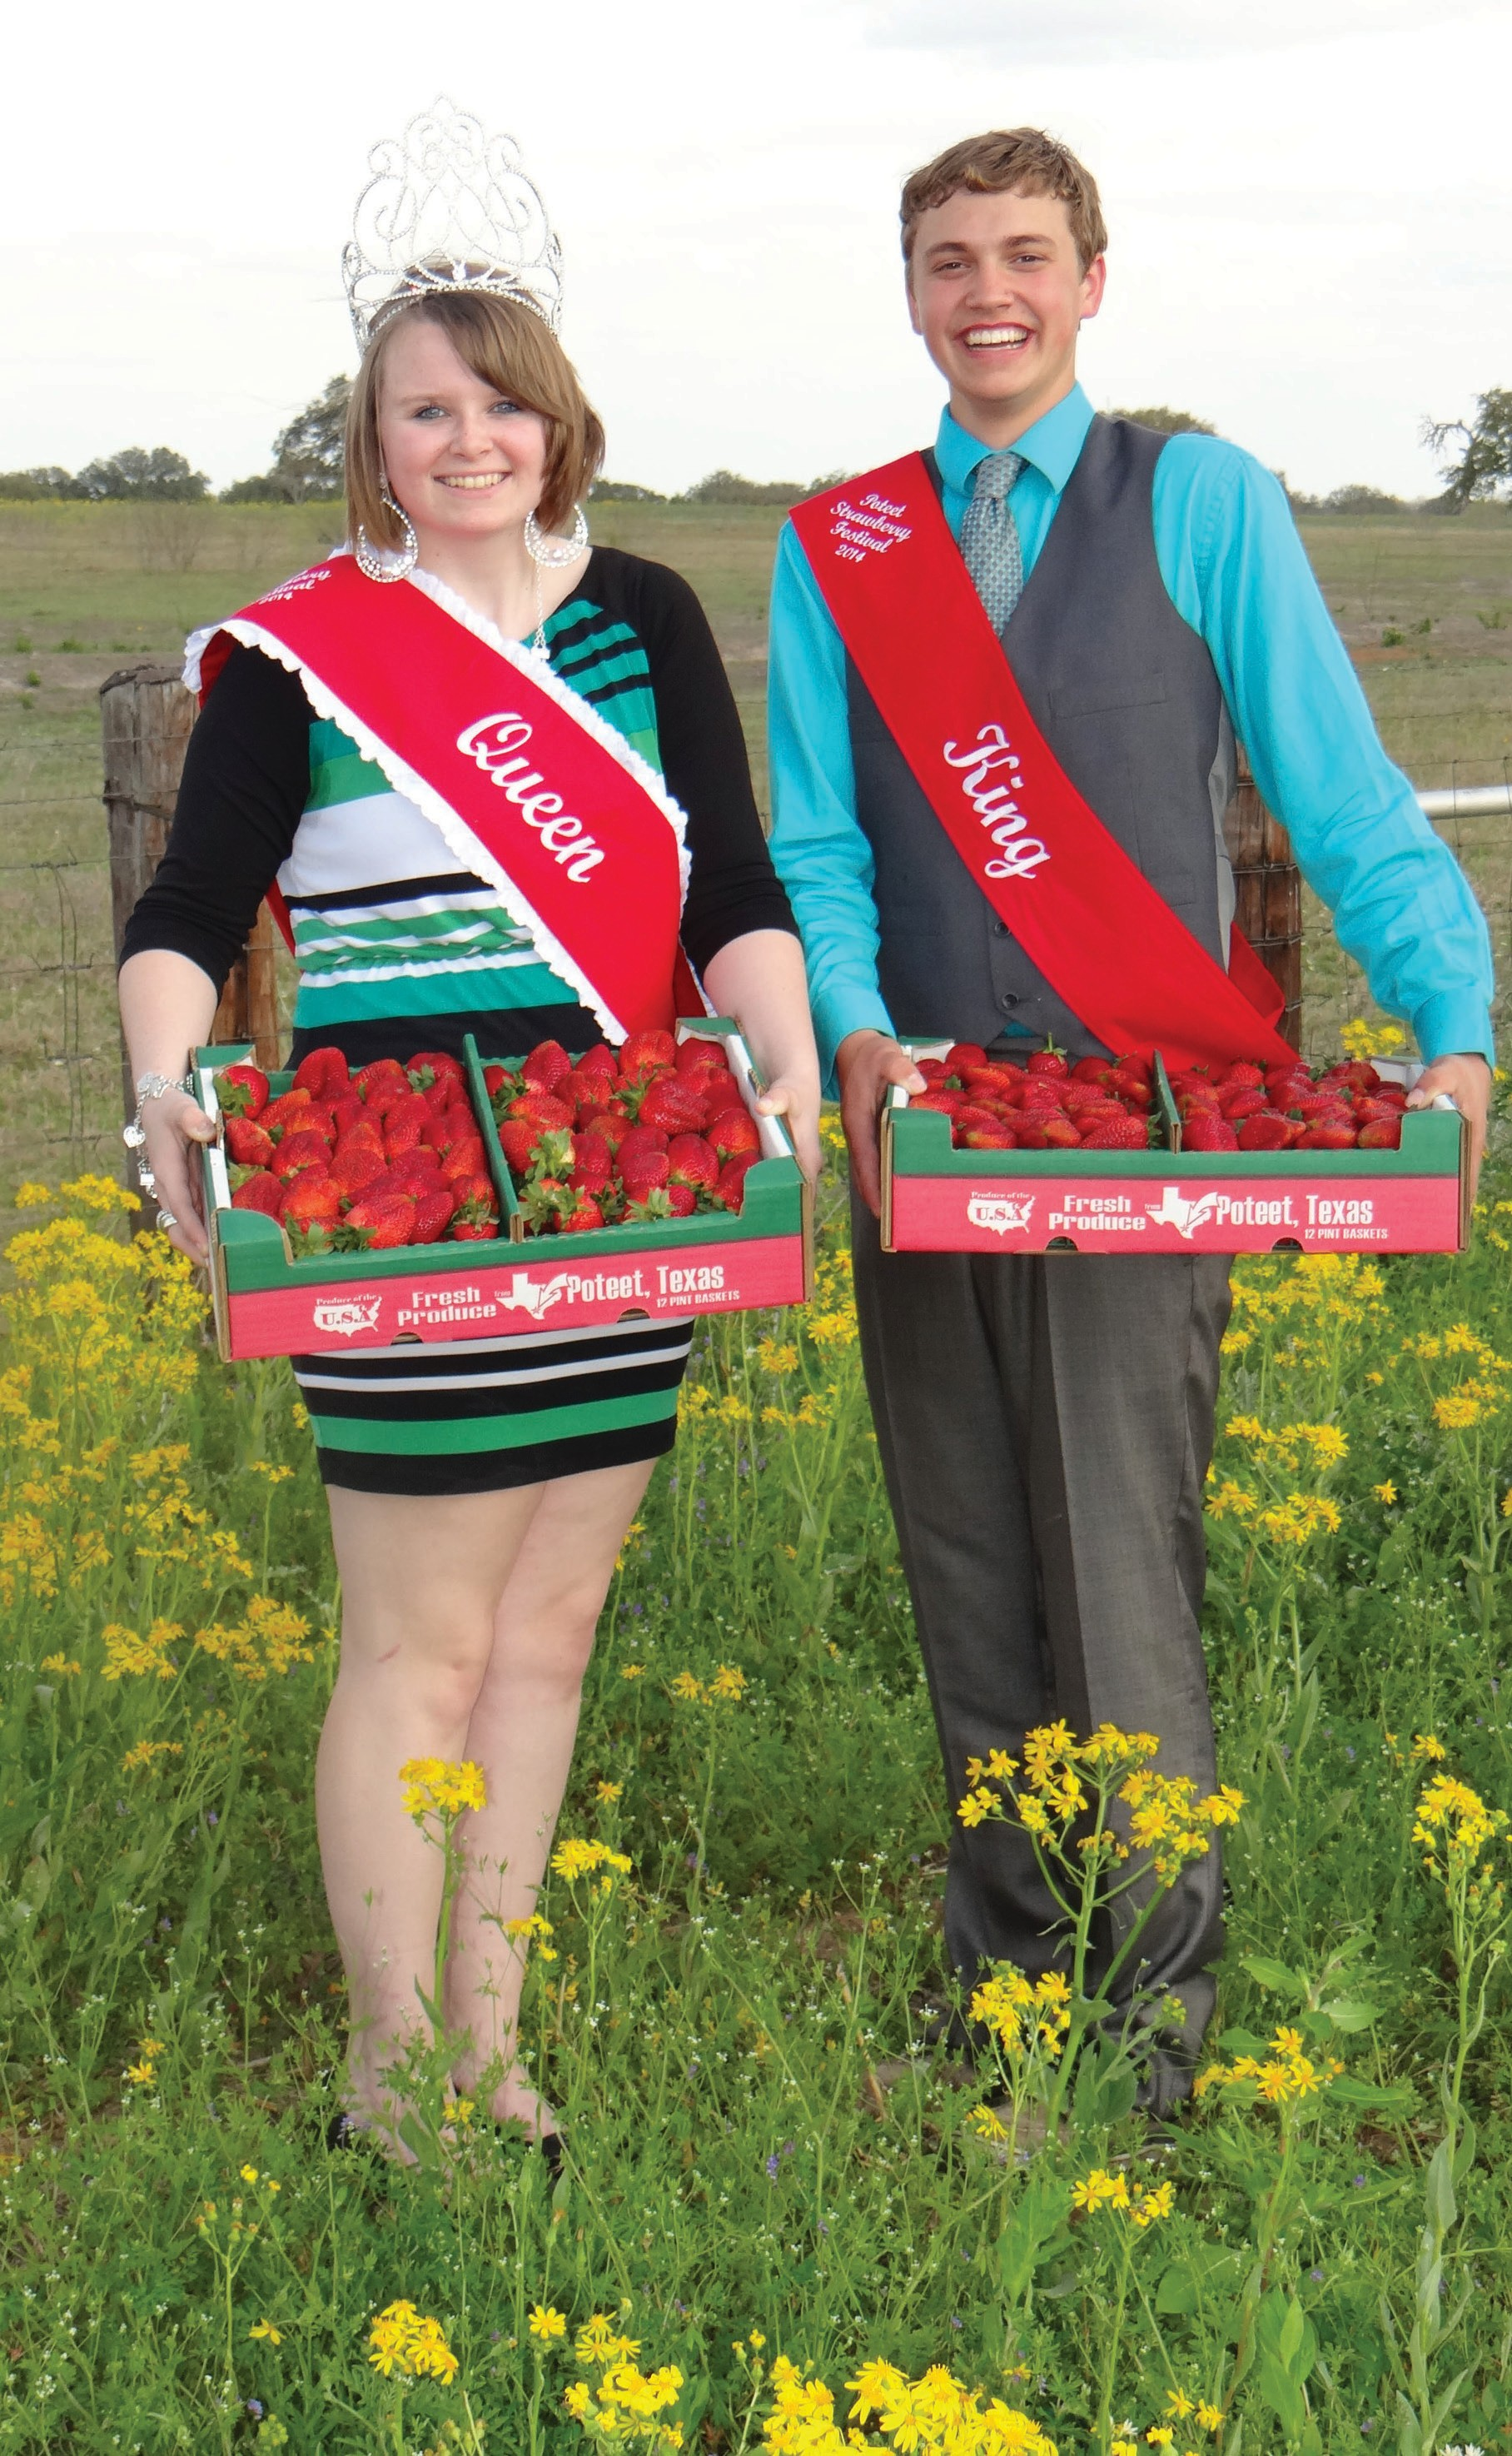 Queen Caitlin Crisp and King Clayton Akers invite everyone to the 67th Strawberry Festival this weekend, April 4-6. Great entertainment, rodeos, dances, concerts, food, auctions and more are planned to make it a fun filled time.